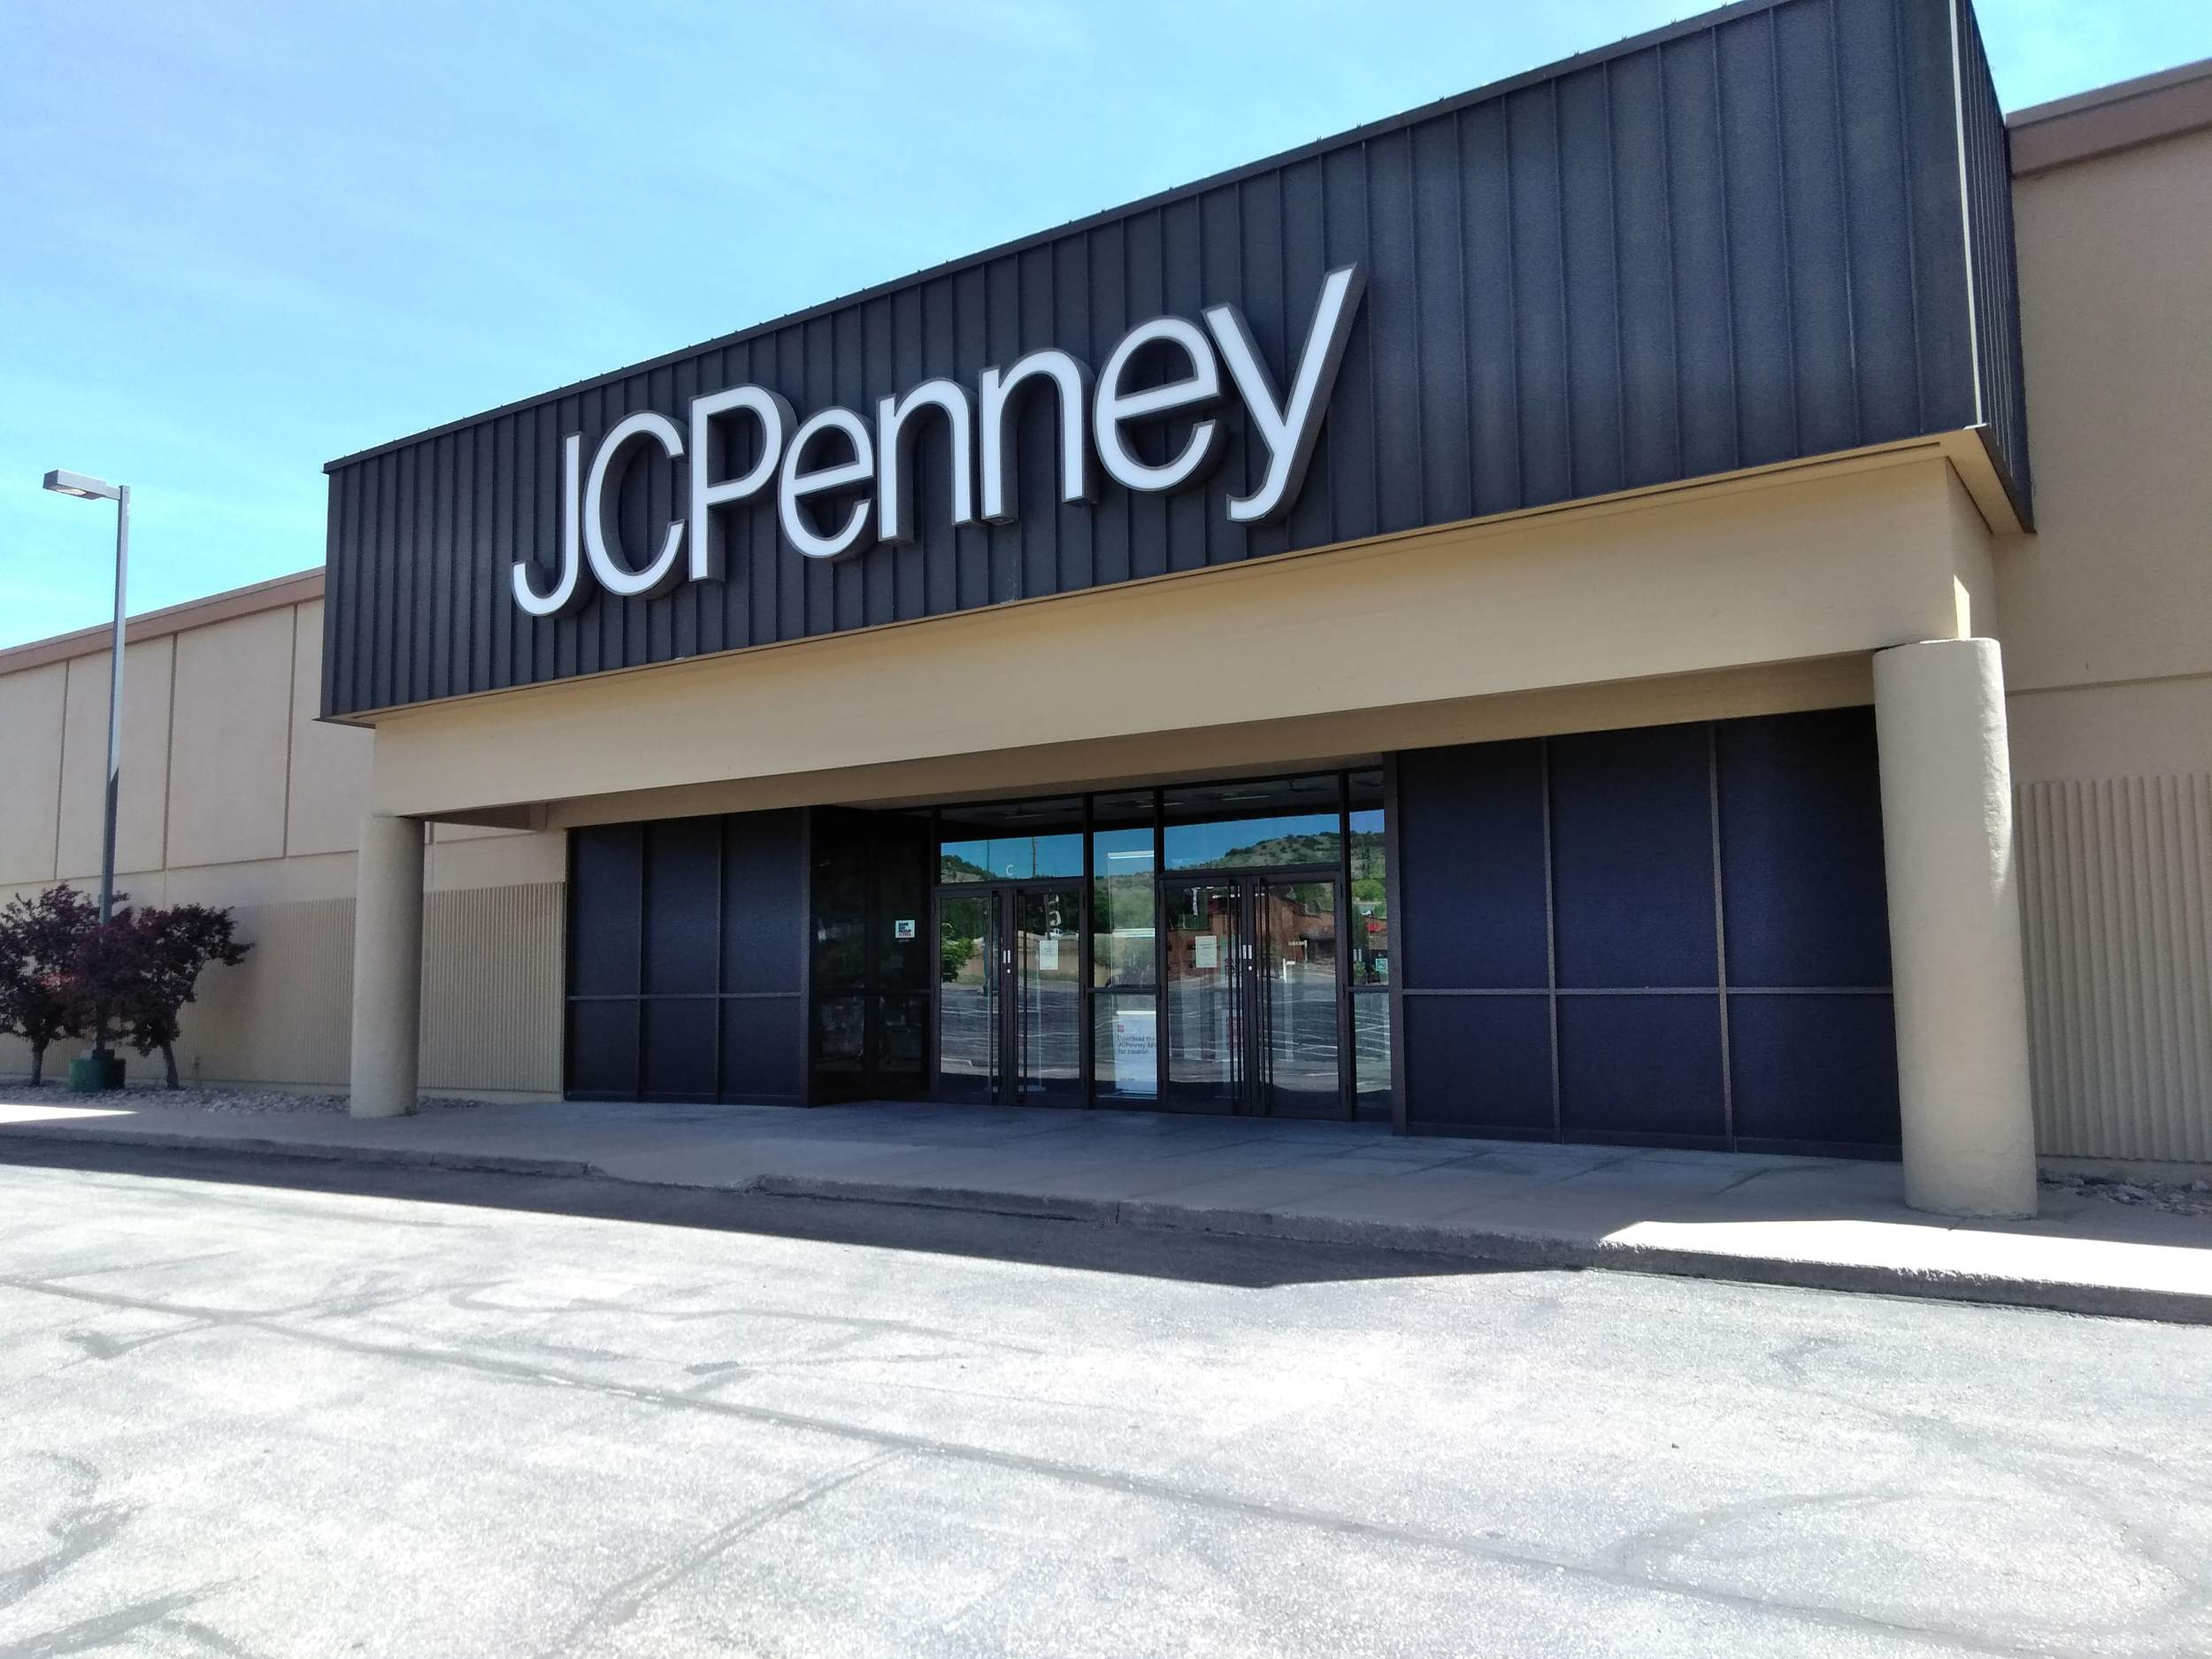 J.C. Penney's to close Bradenton, Tampa & Sebring locations